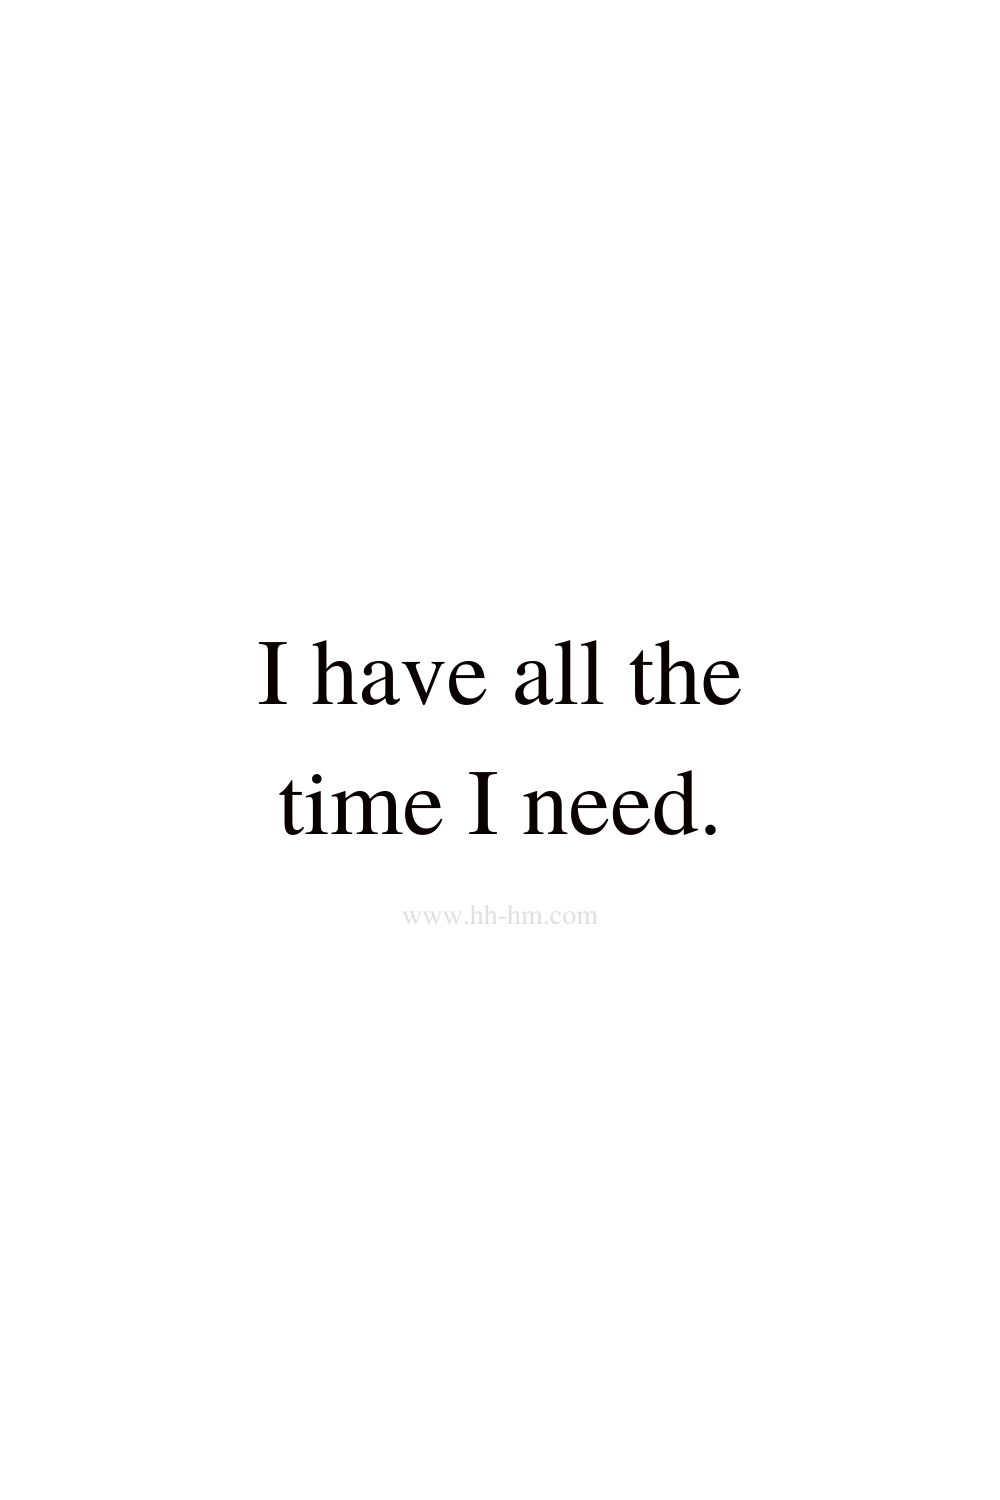 I have all the time I need - morning affirmations